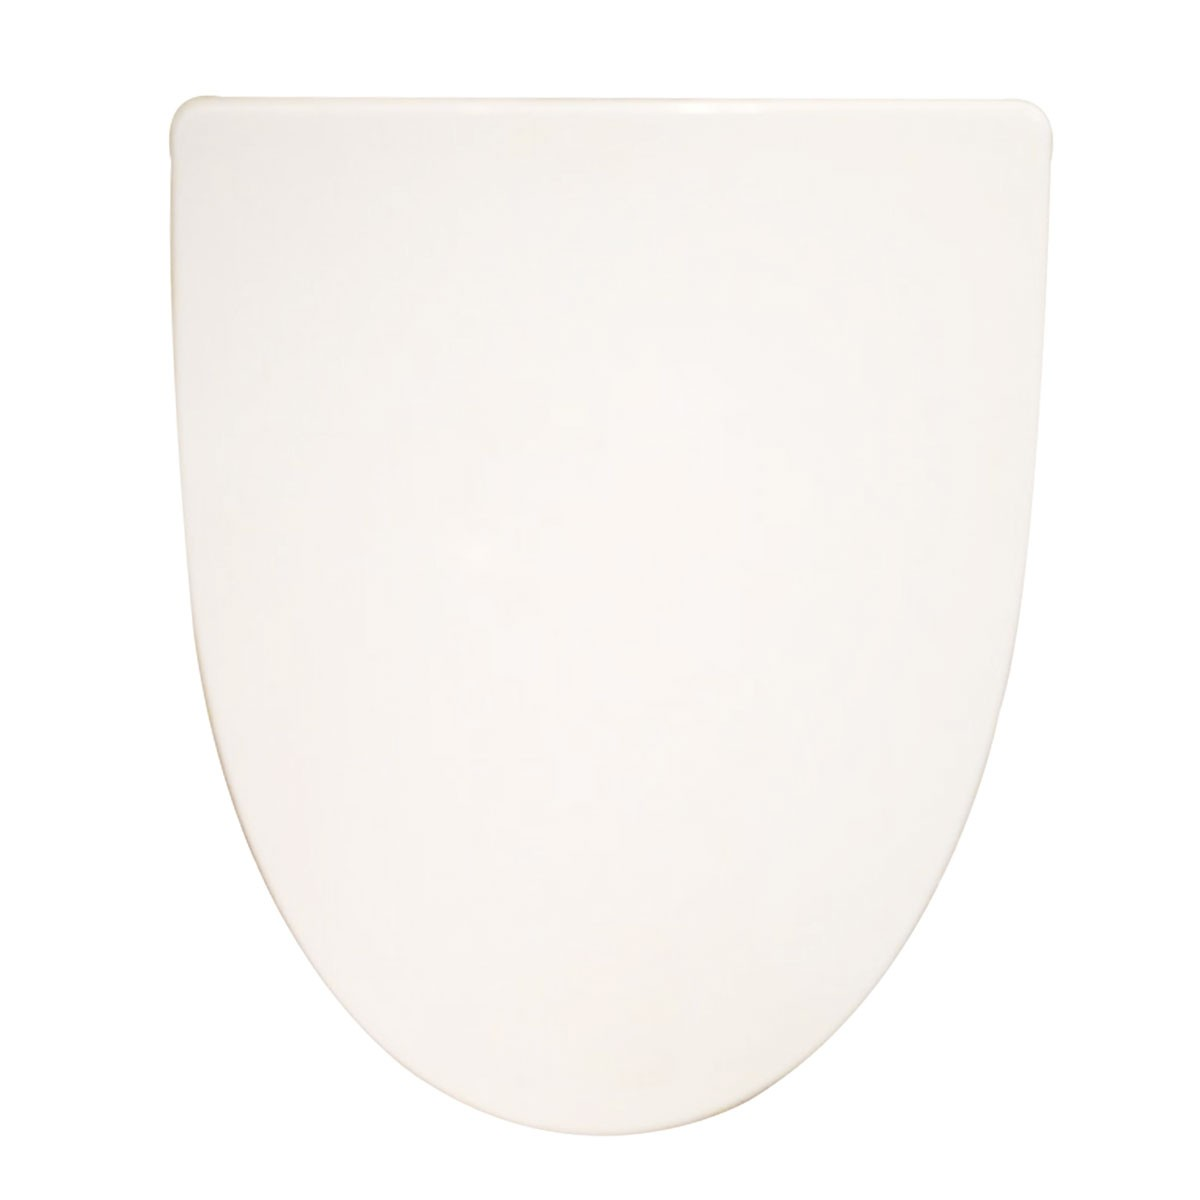 PP White Front Round Soft Close Toilet Seat with Cover (DK-CL-117)